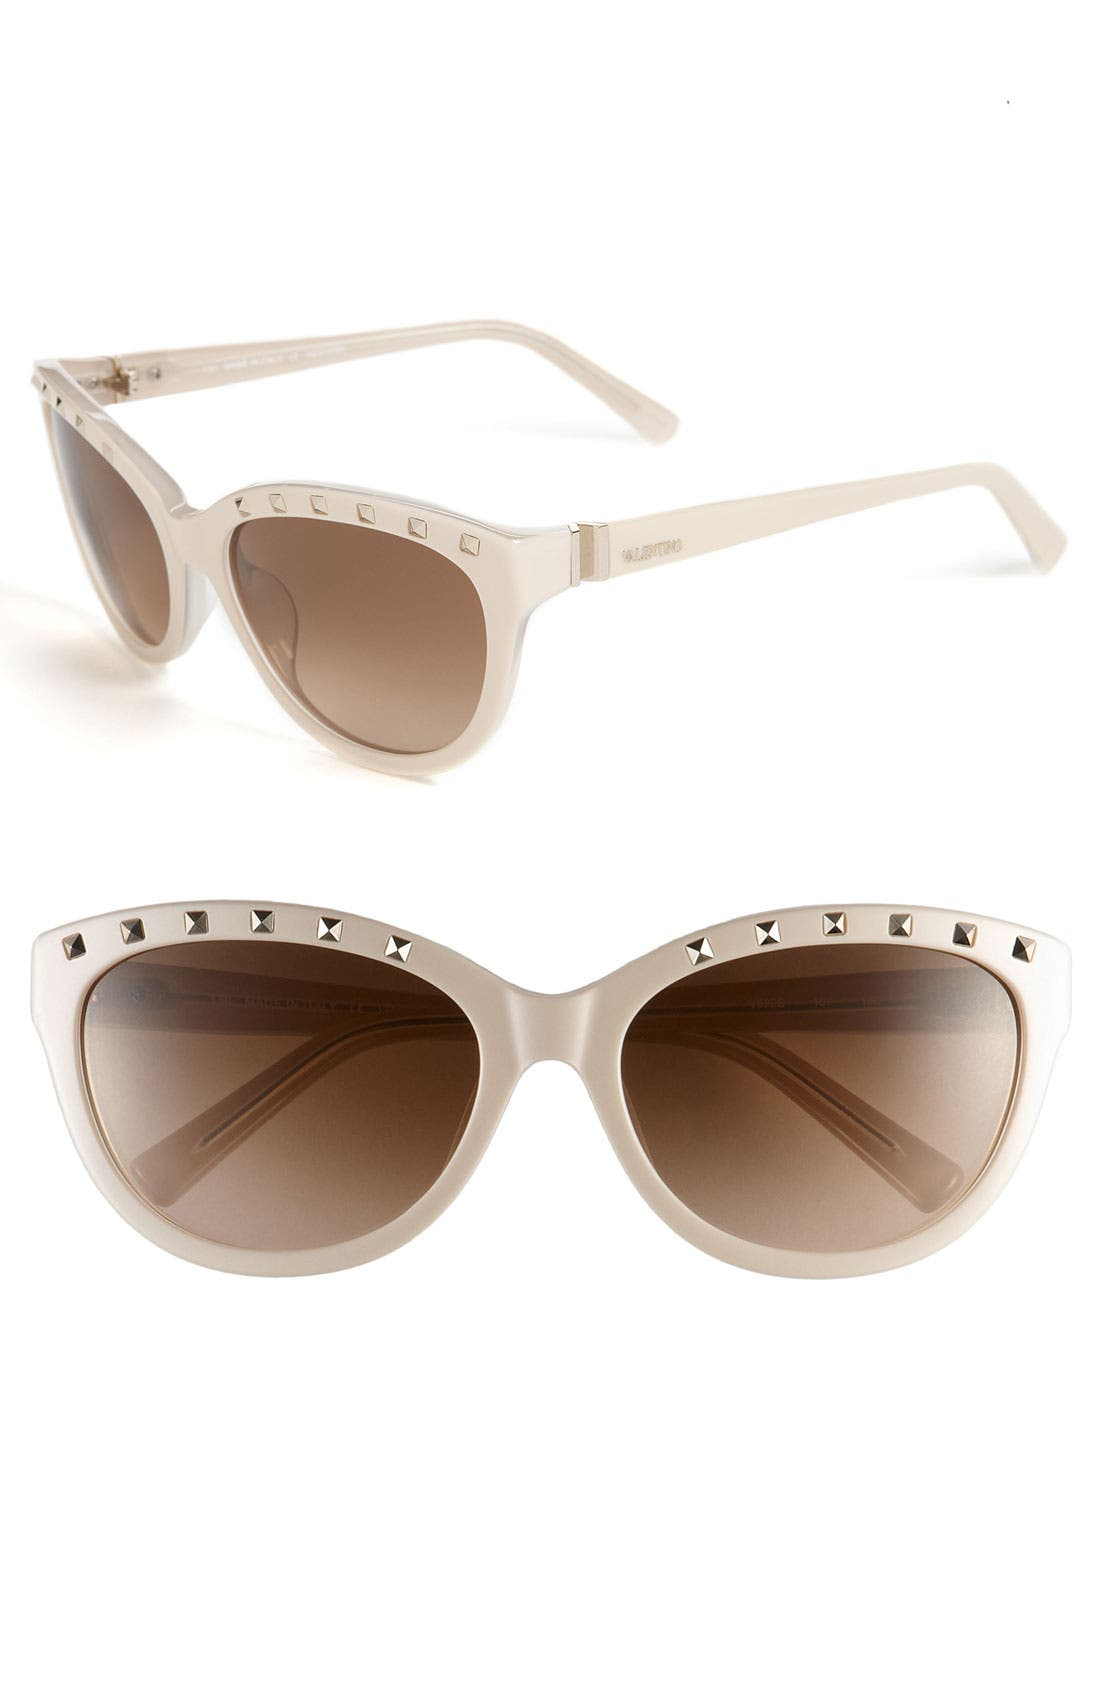 Main Image - Valentino 57mm Studded Cat Eye Sunglasses